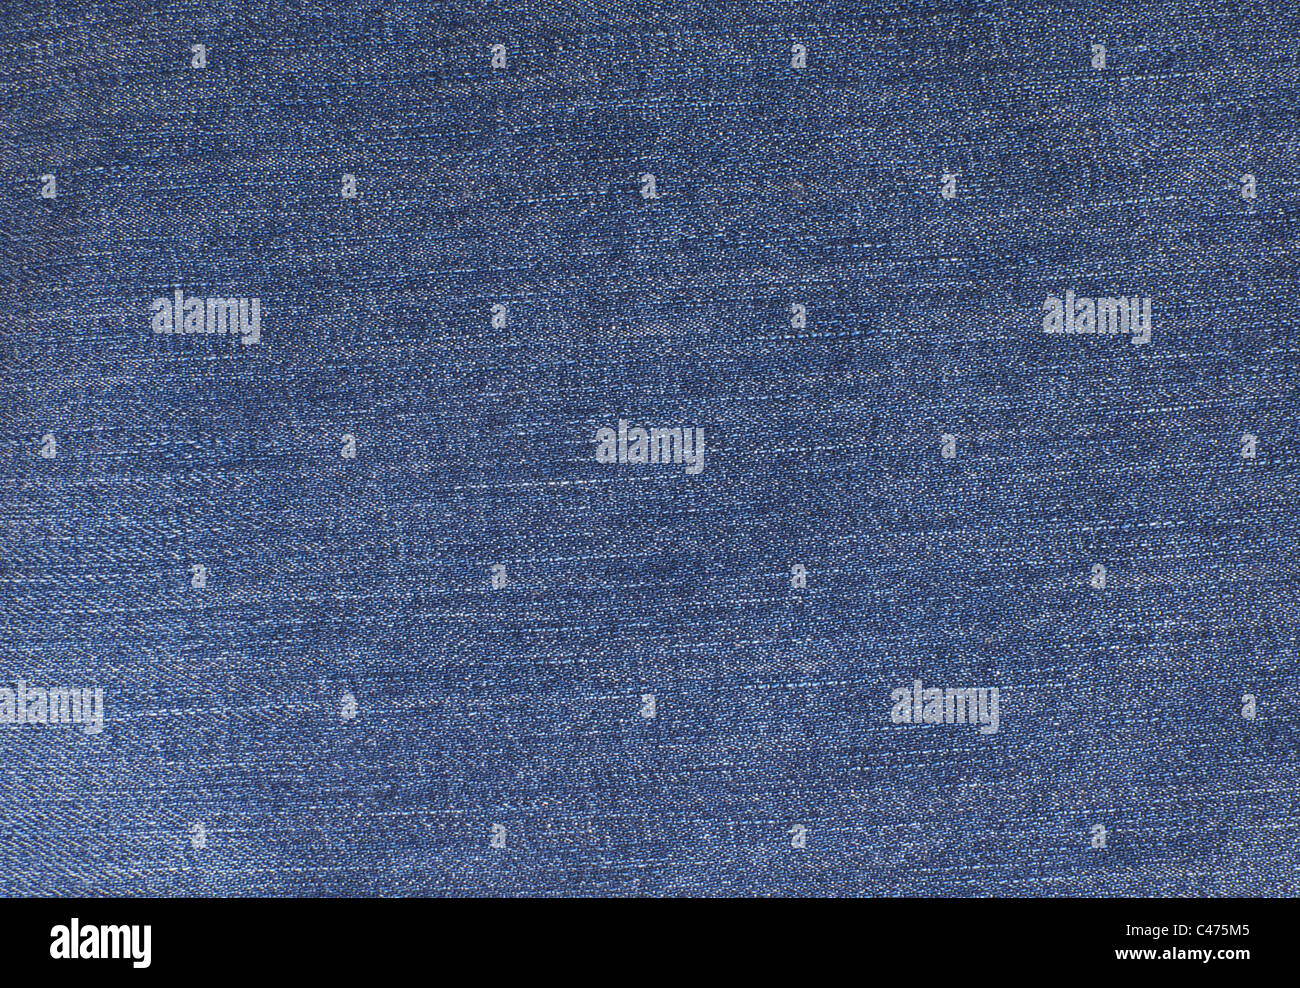 Blue jeans denim detailed background - Stock Image